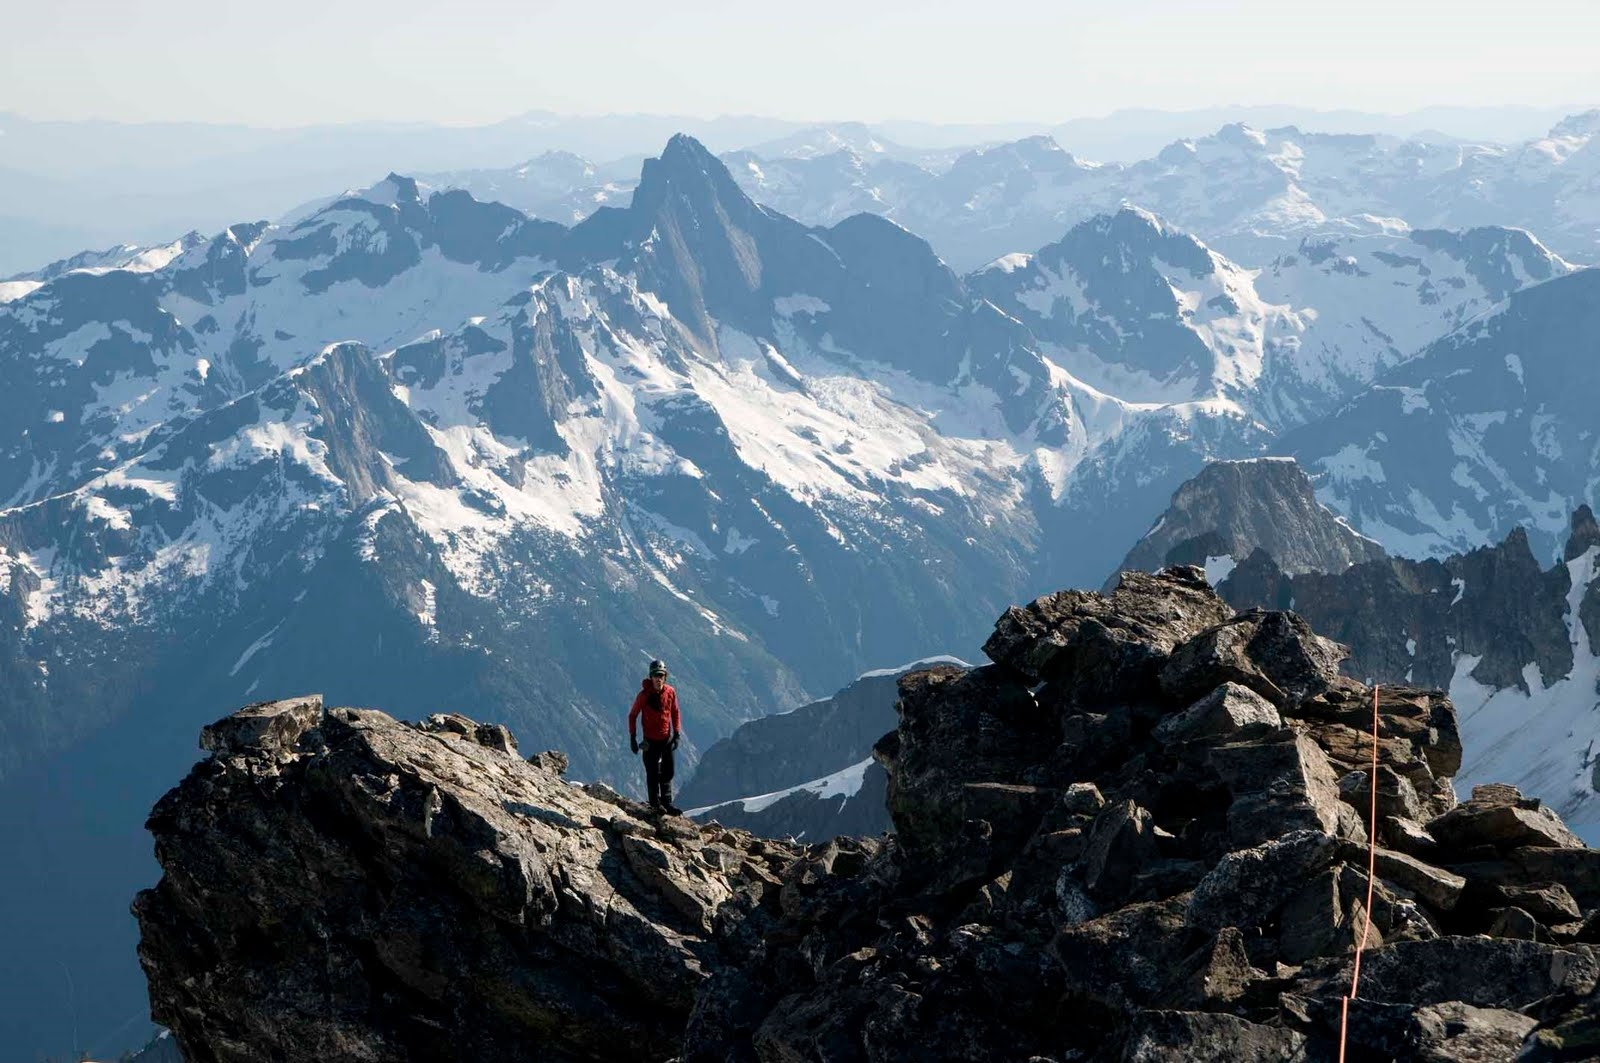 essay on mountaineering expedition